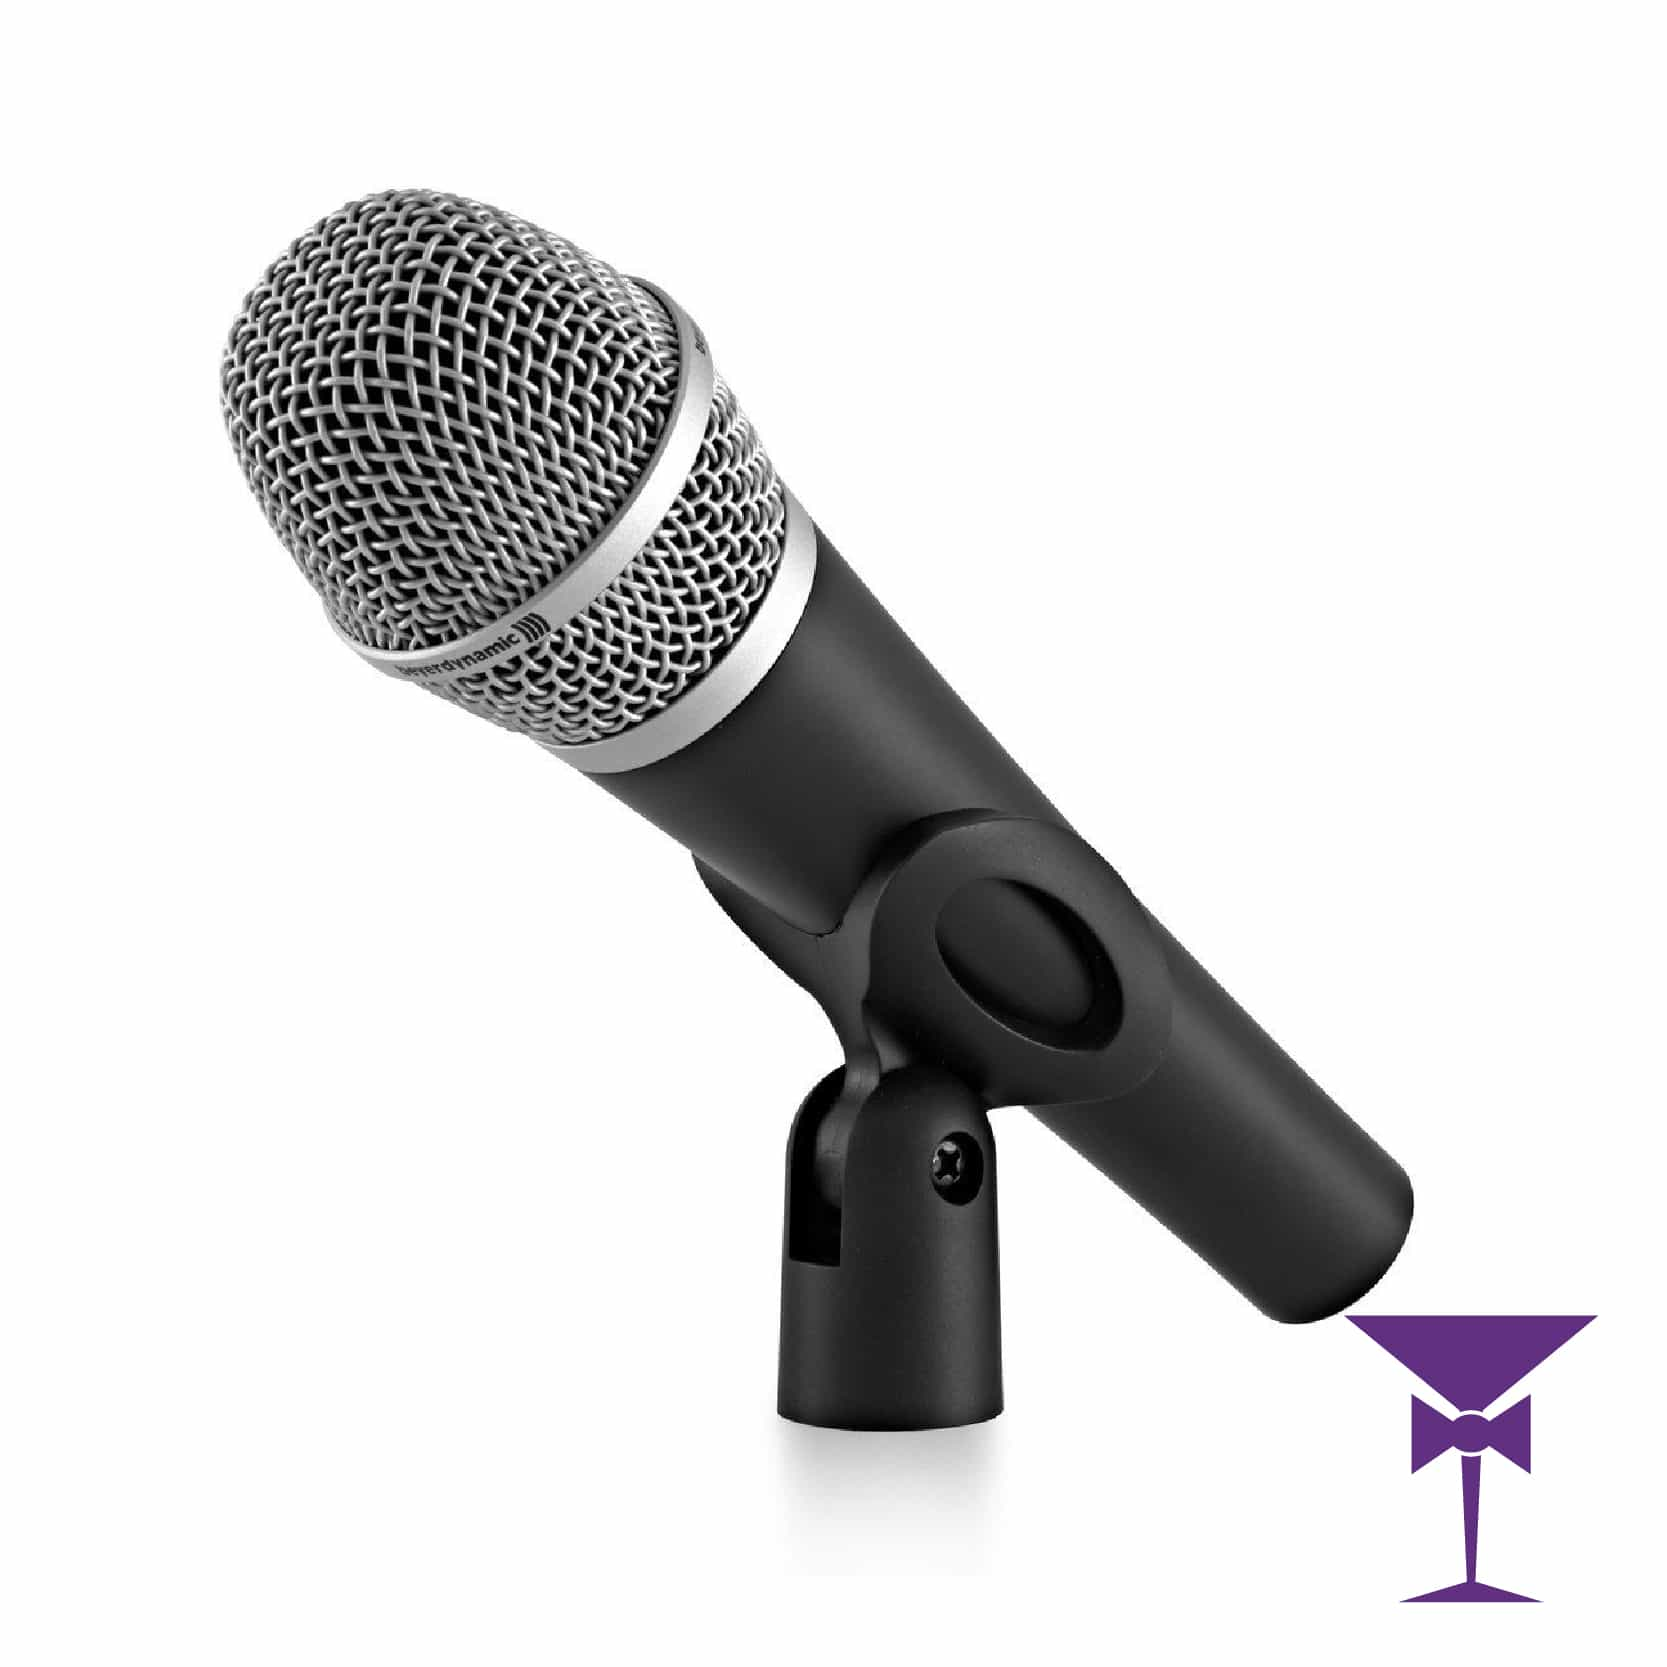 Vocal microphone hire Kent, Surrey & Sussex